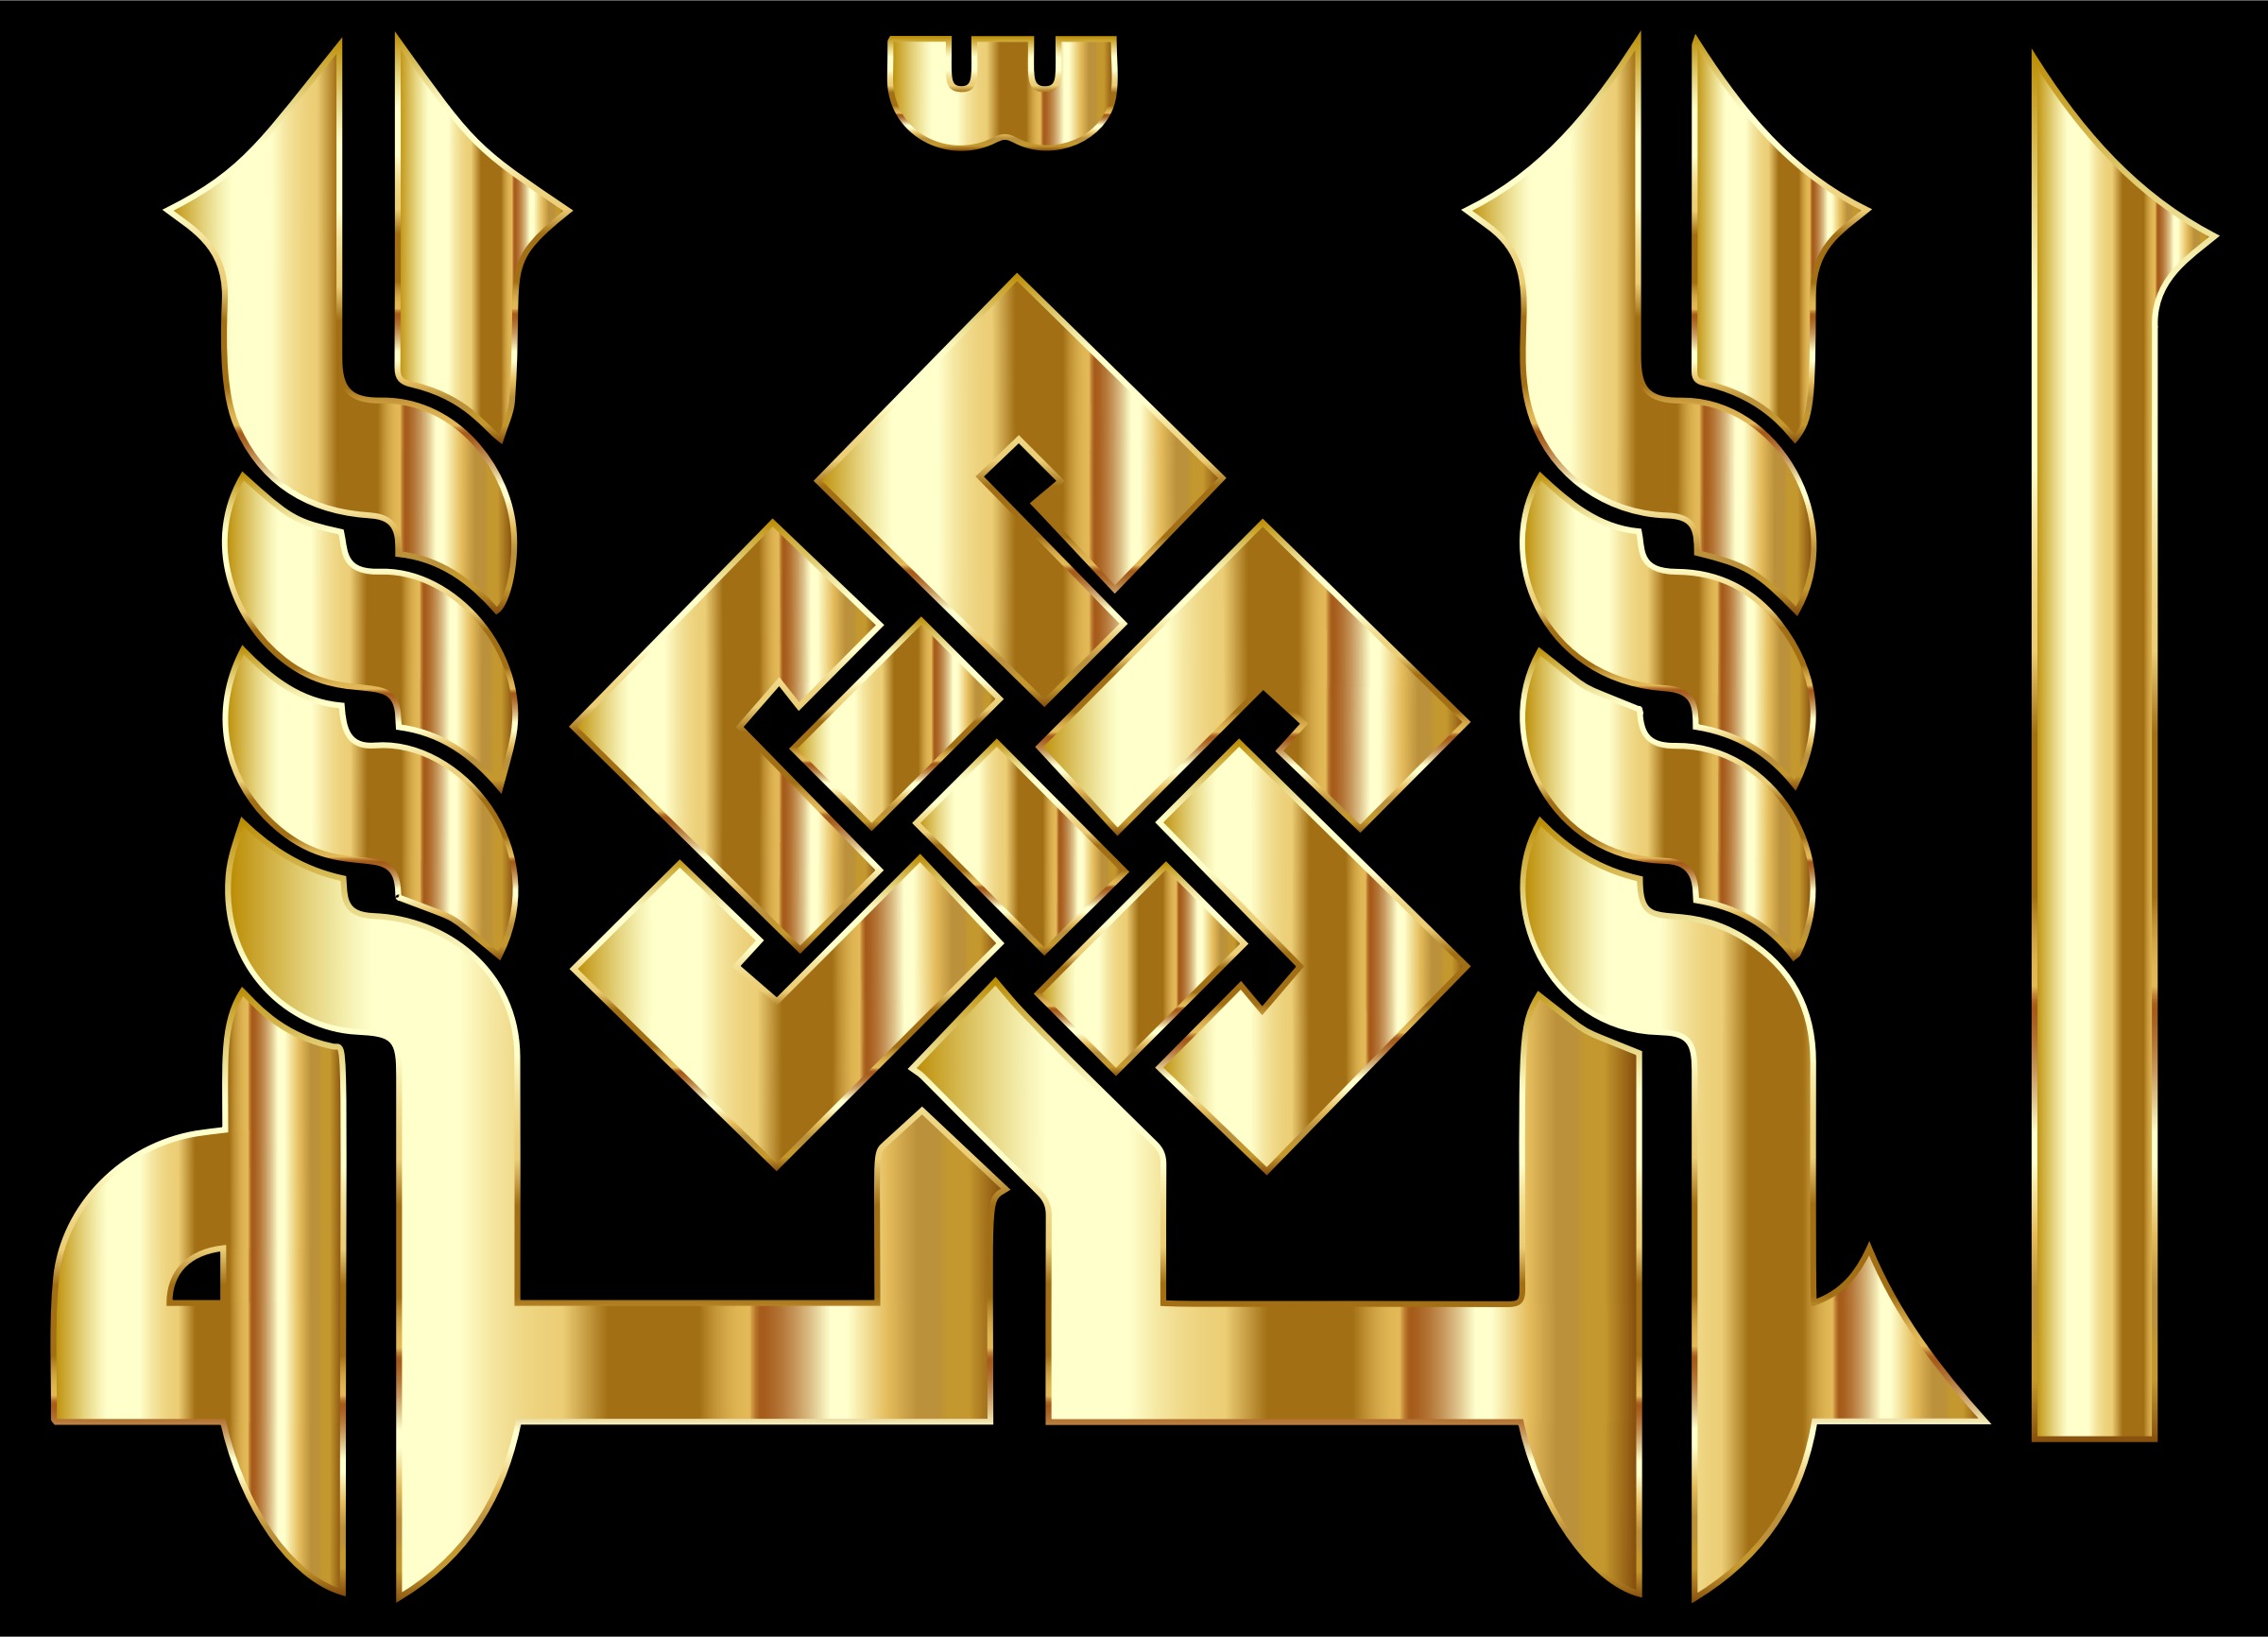 Gold BismAllah In Kufic Style 2 by GDJ